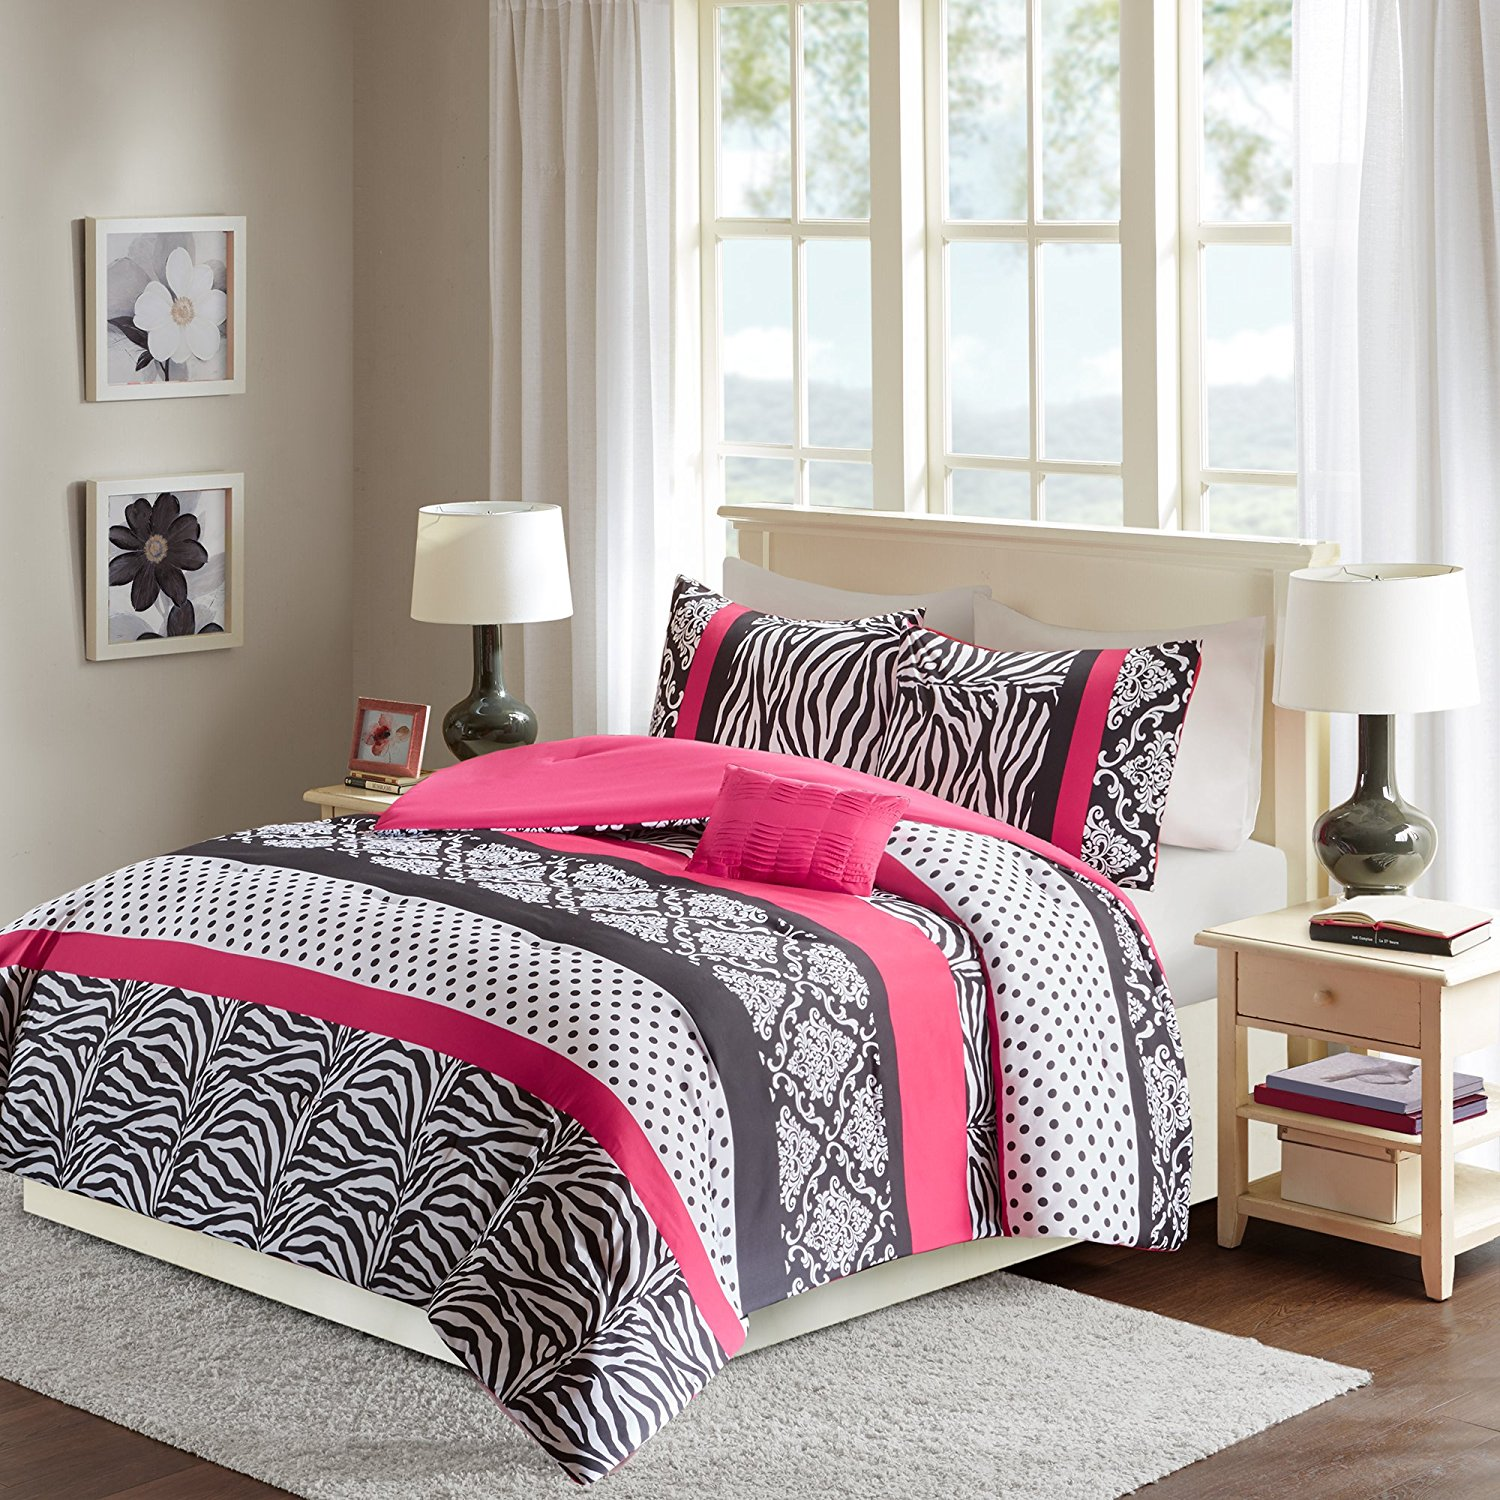 Pink and black zebra bedding achieving a stylish child 39 s for Hot pink bedroom set